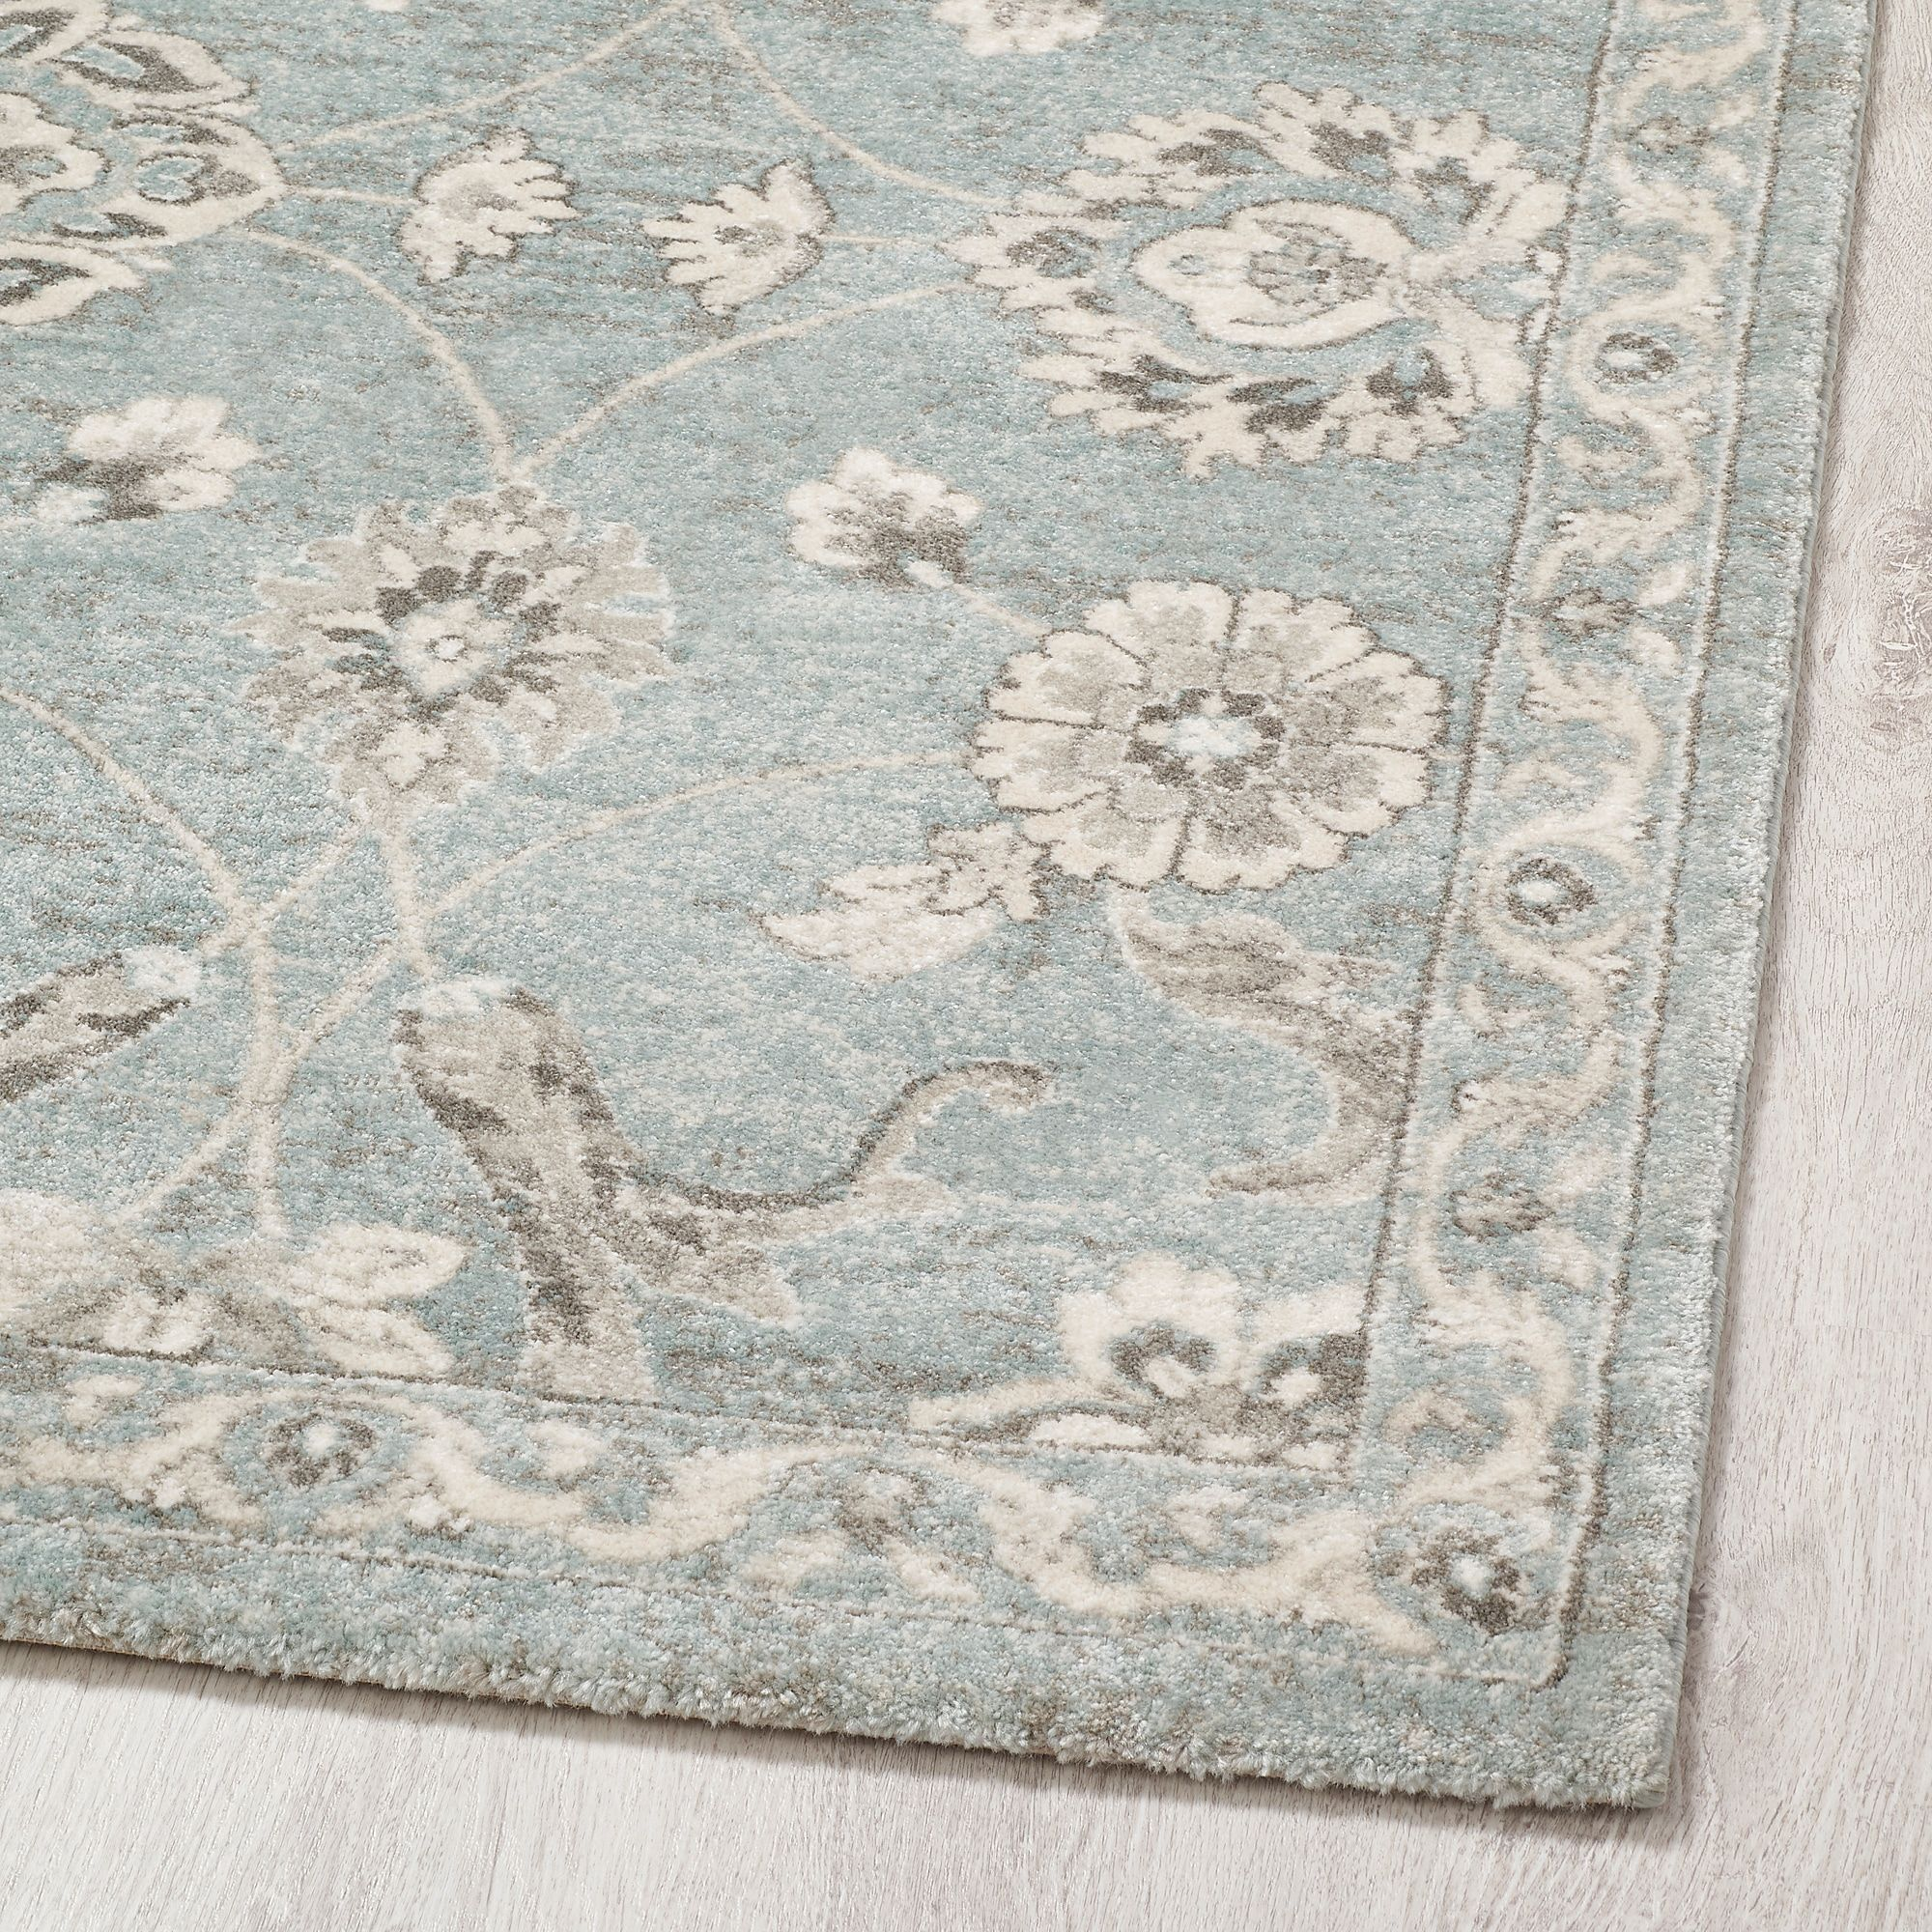 Ringive Rug Low Pile Blue 6 7 X9 10 200x300 Cm Rugs